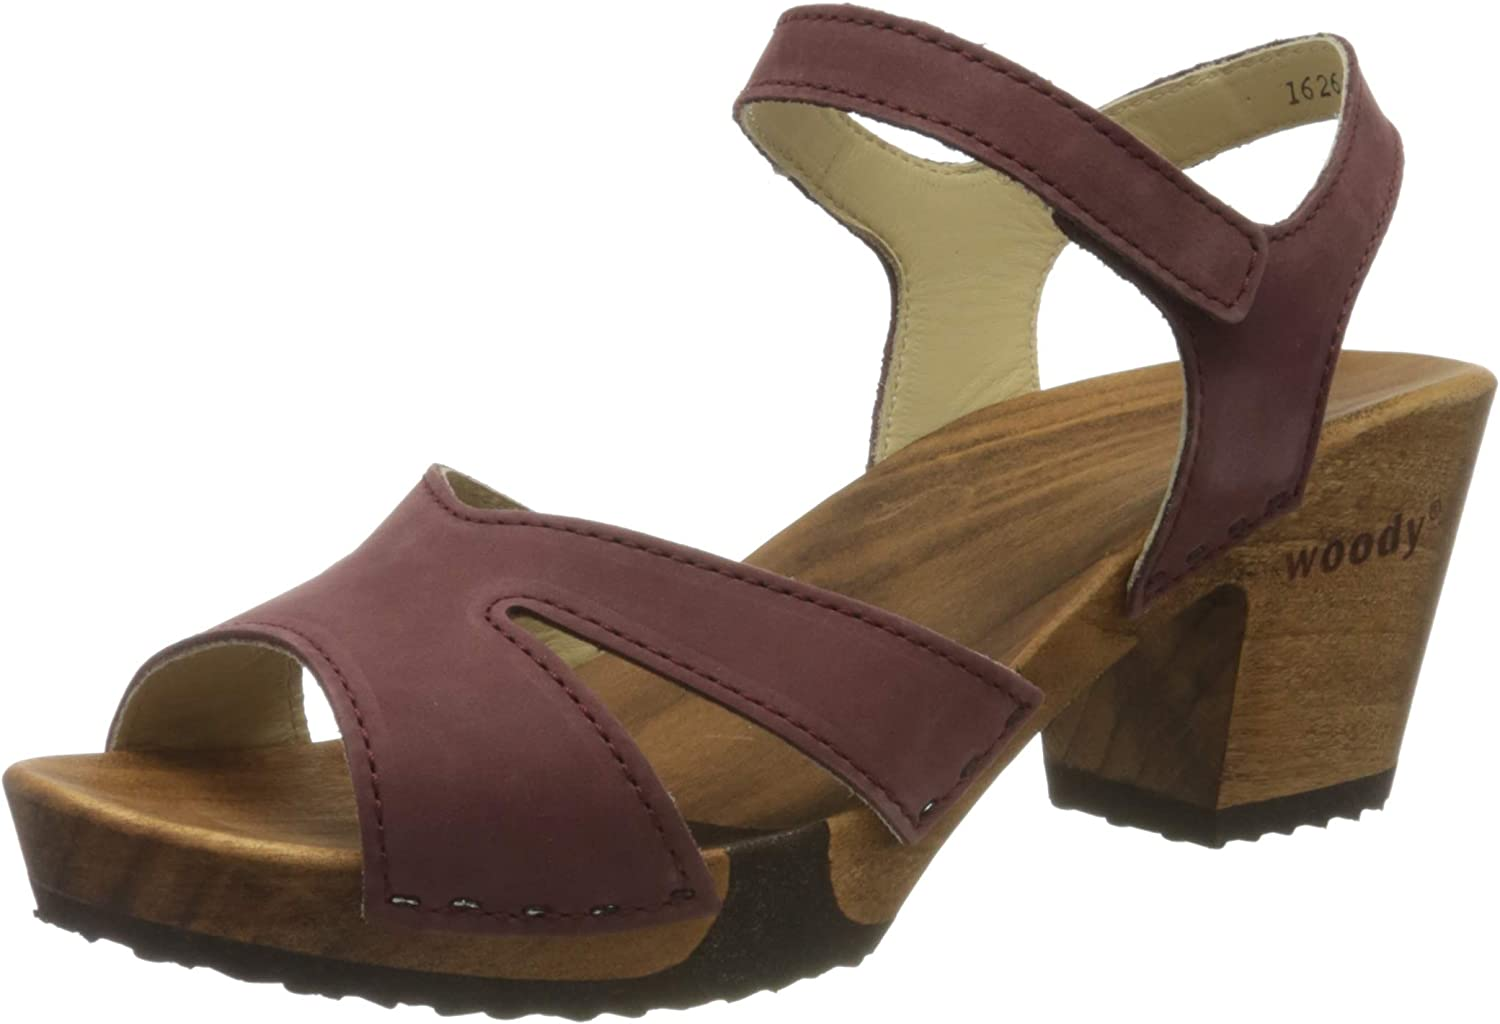 Limited time for free shipping Woody Women's Cheap Mules